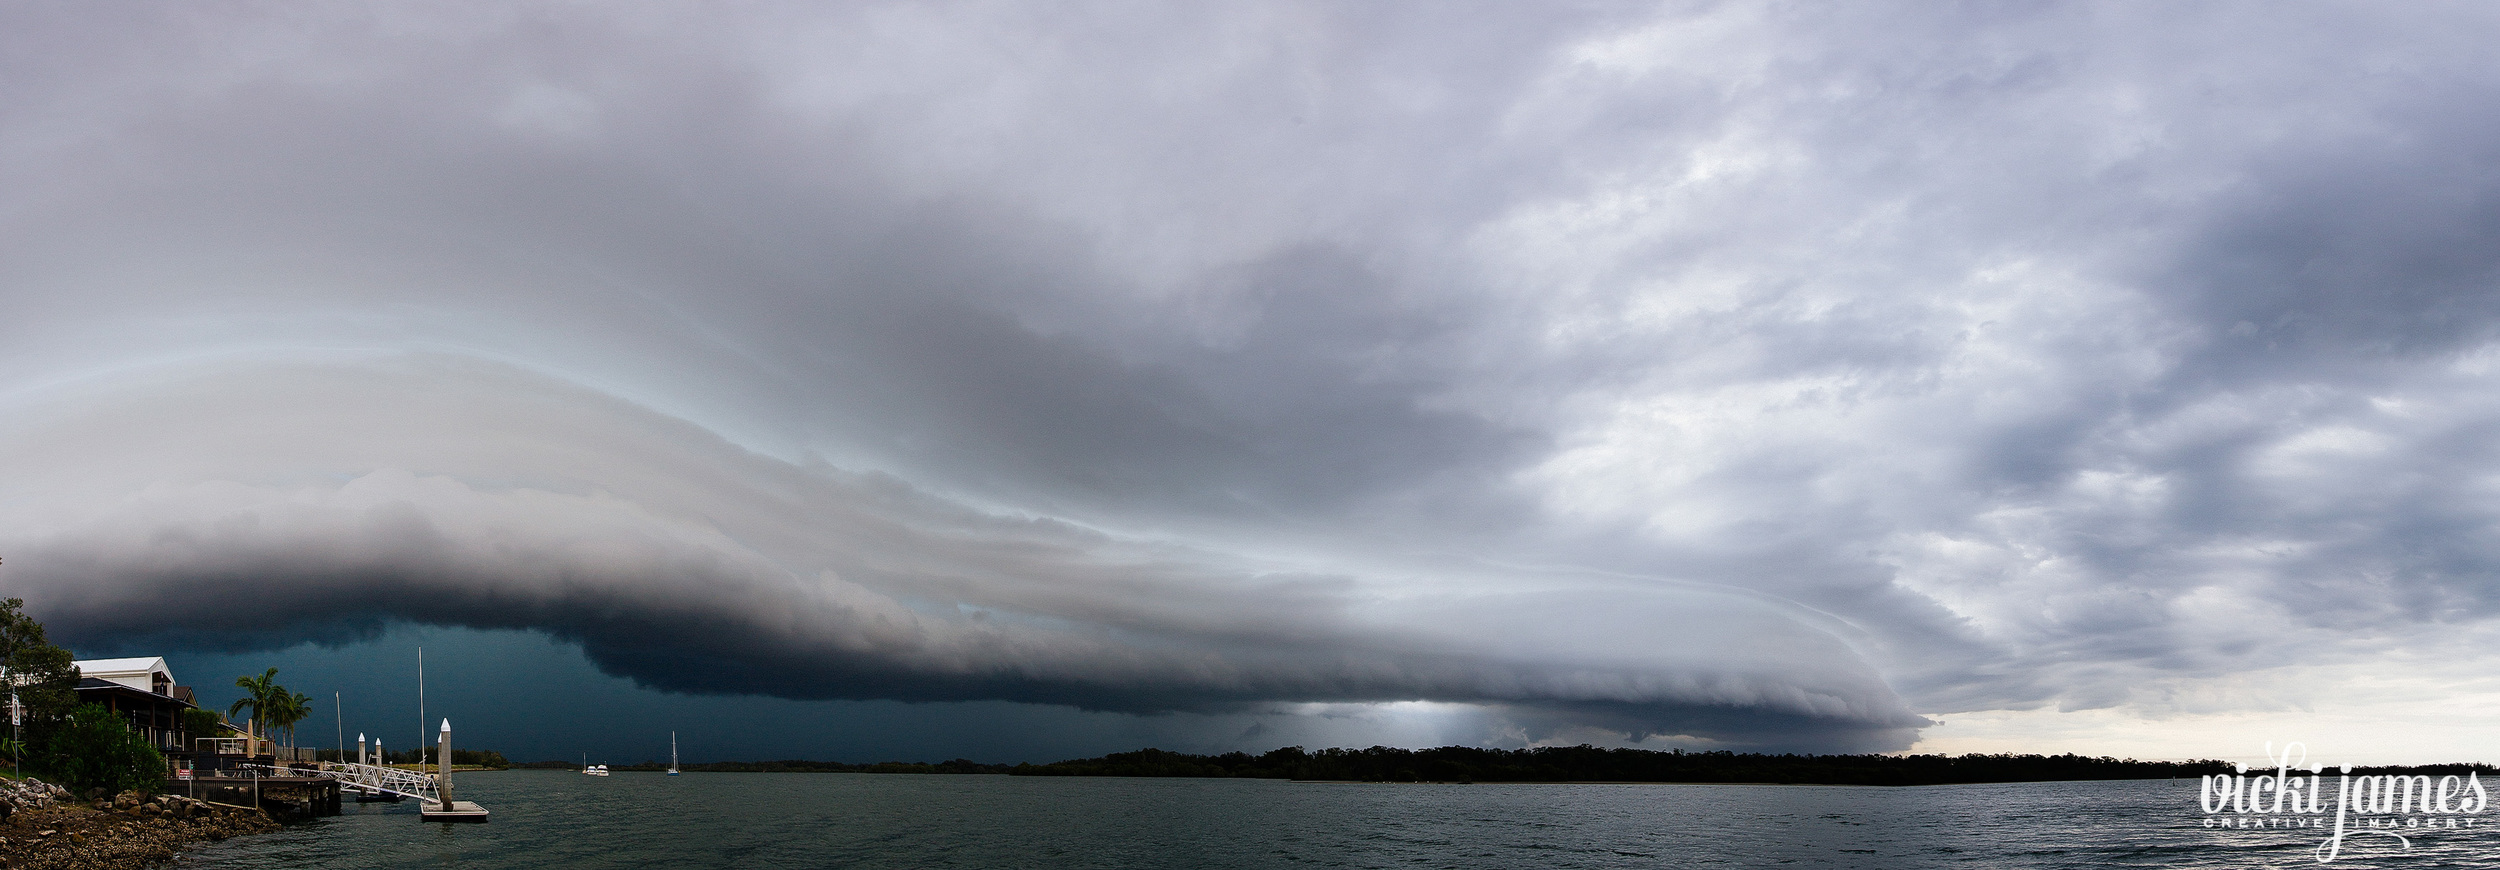 Oyster Channel Storm